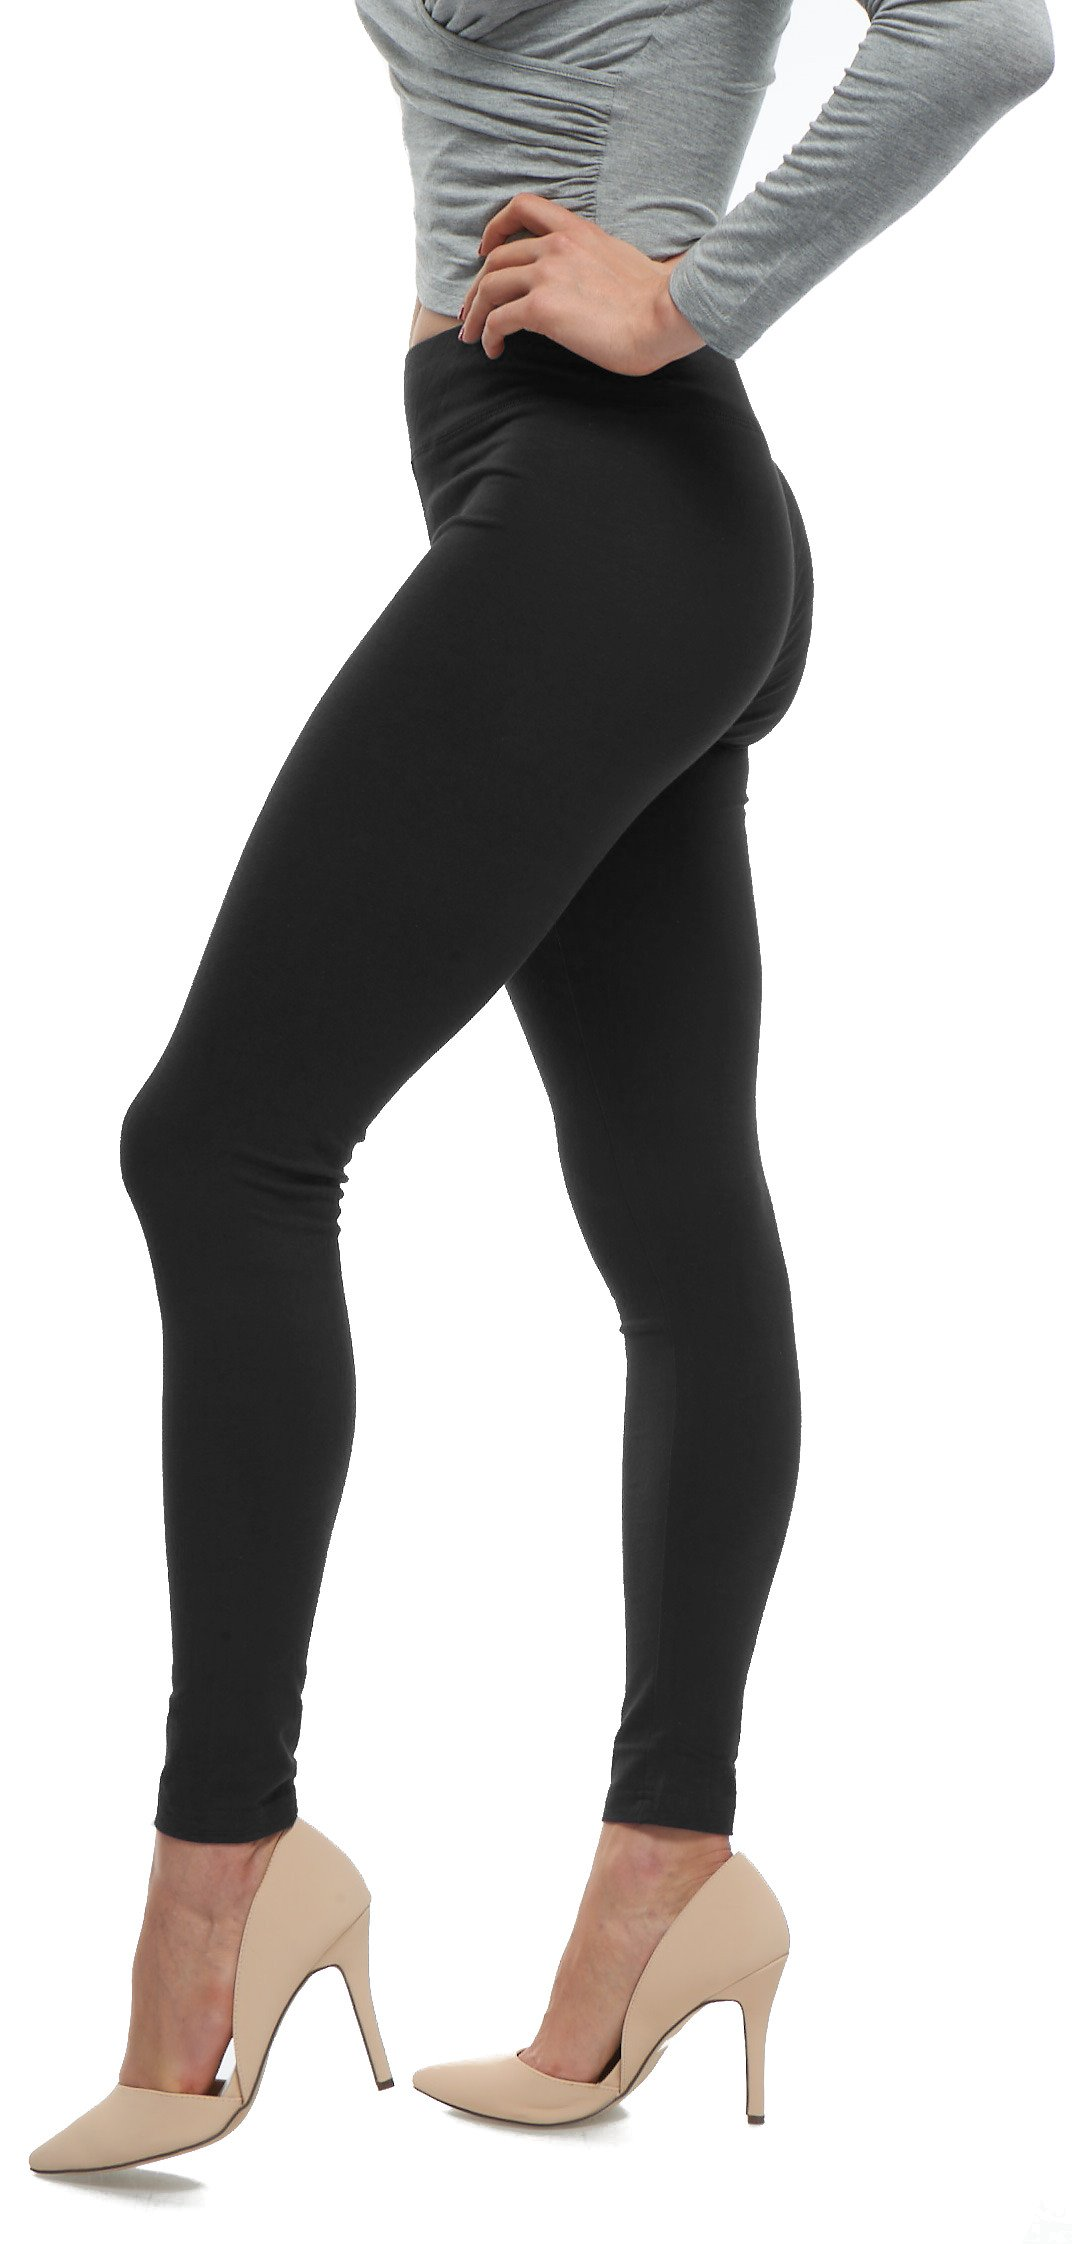 Soft Cotton Full Length High Waisted Workout Leggings - Best Selling Colors - Black Large